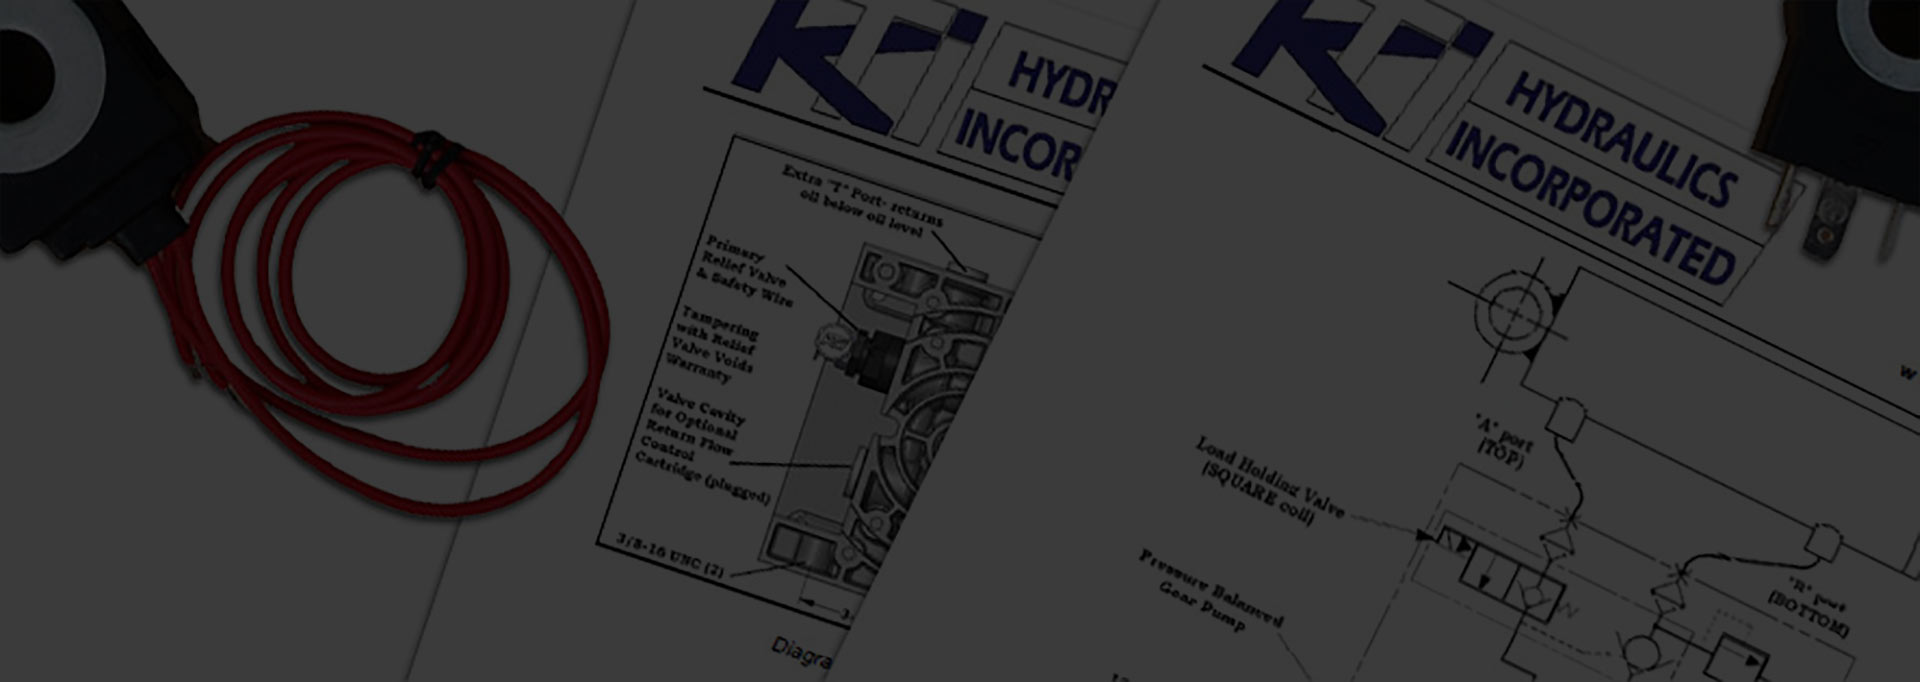 Dc Power Unit Troubleshooting Guide Kti Hydraulics Inc Understand Circuit Operation